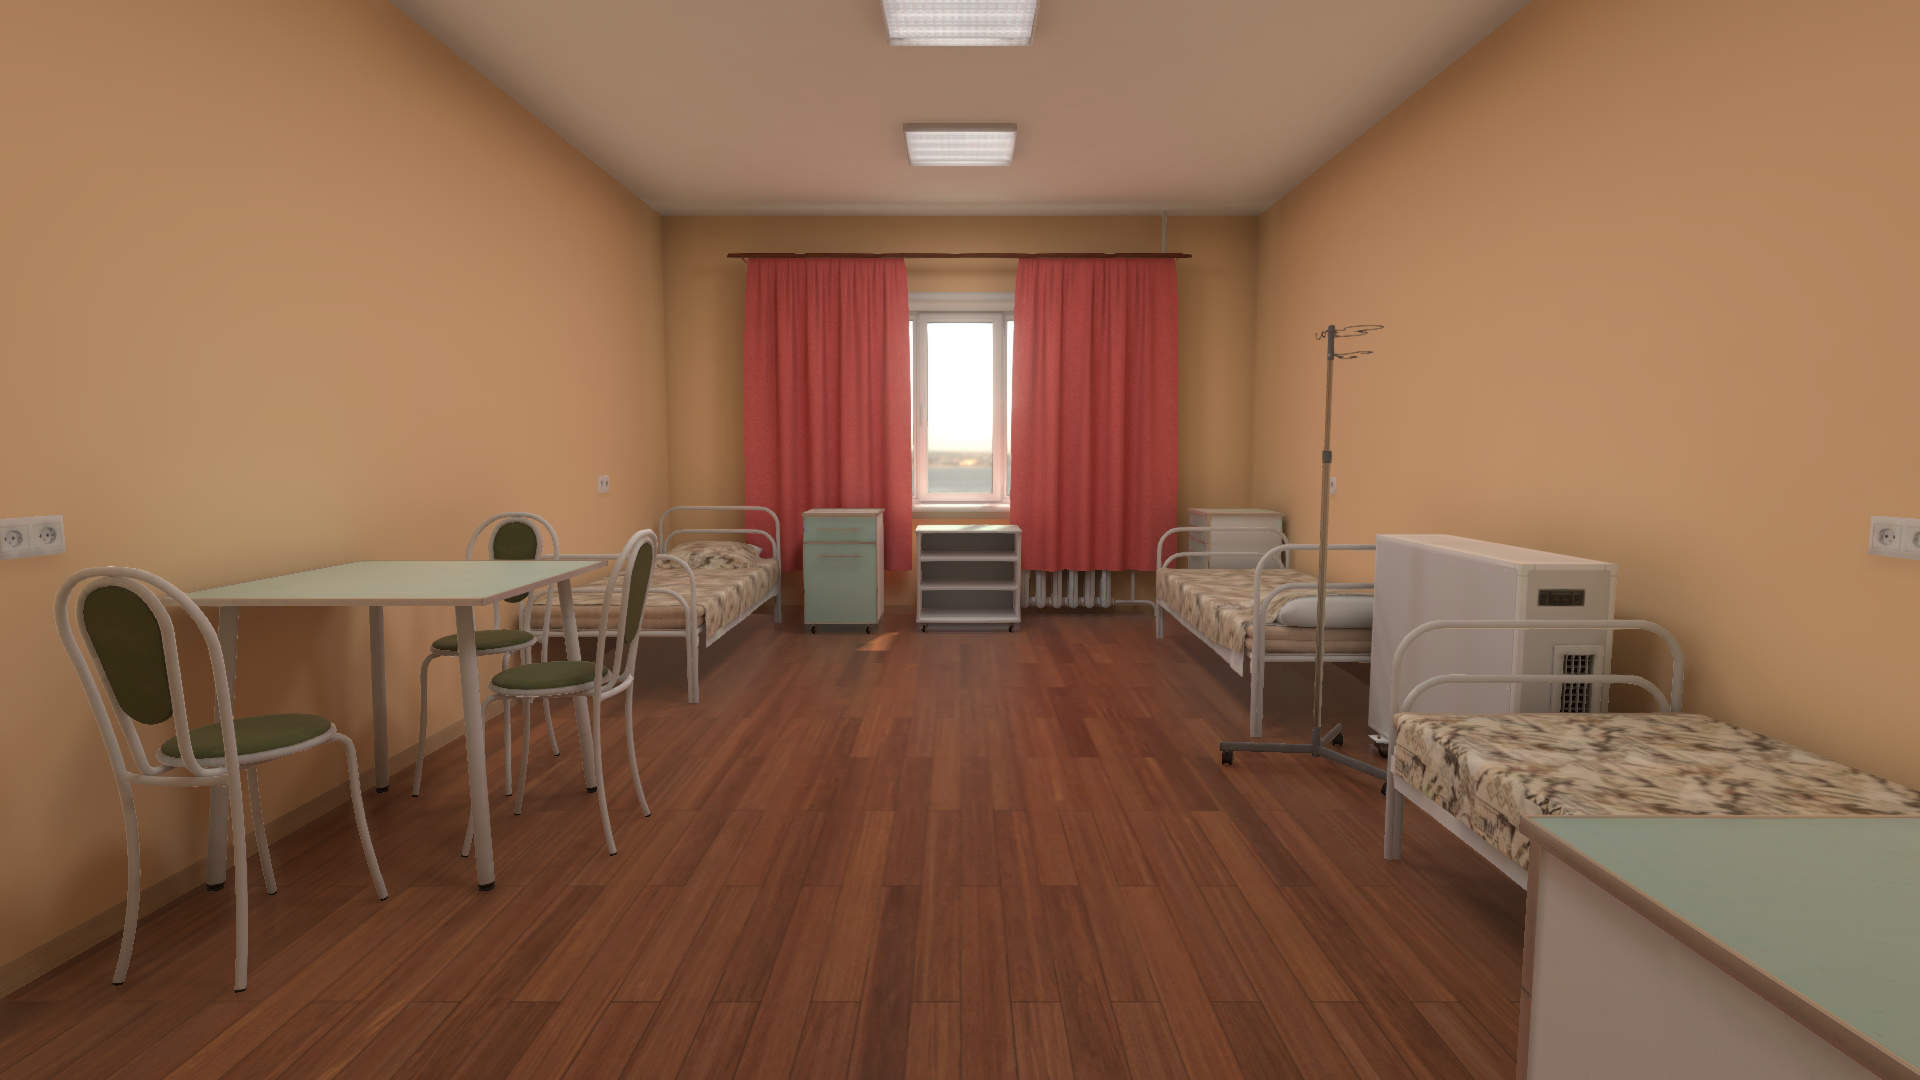 Infectious Hospital Room - 3D Environment